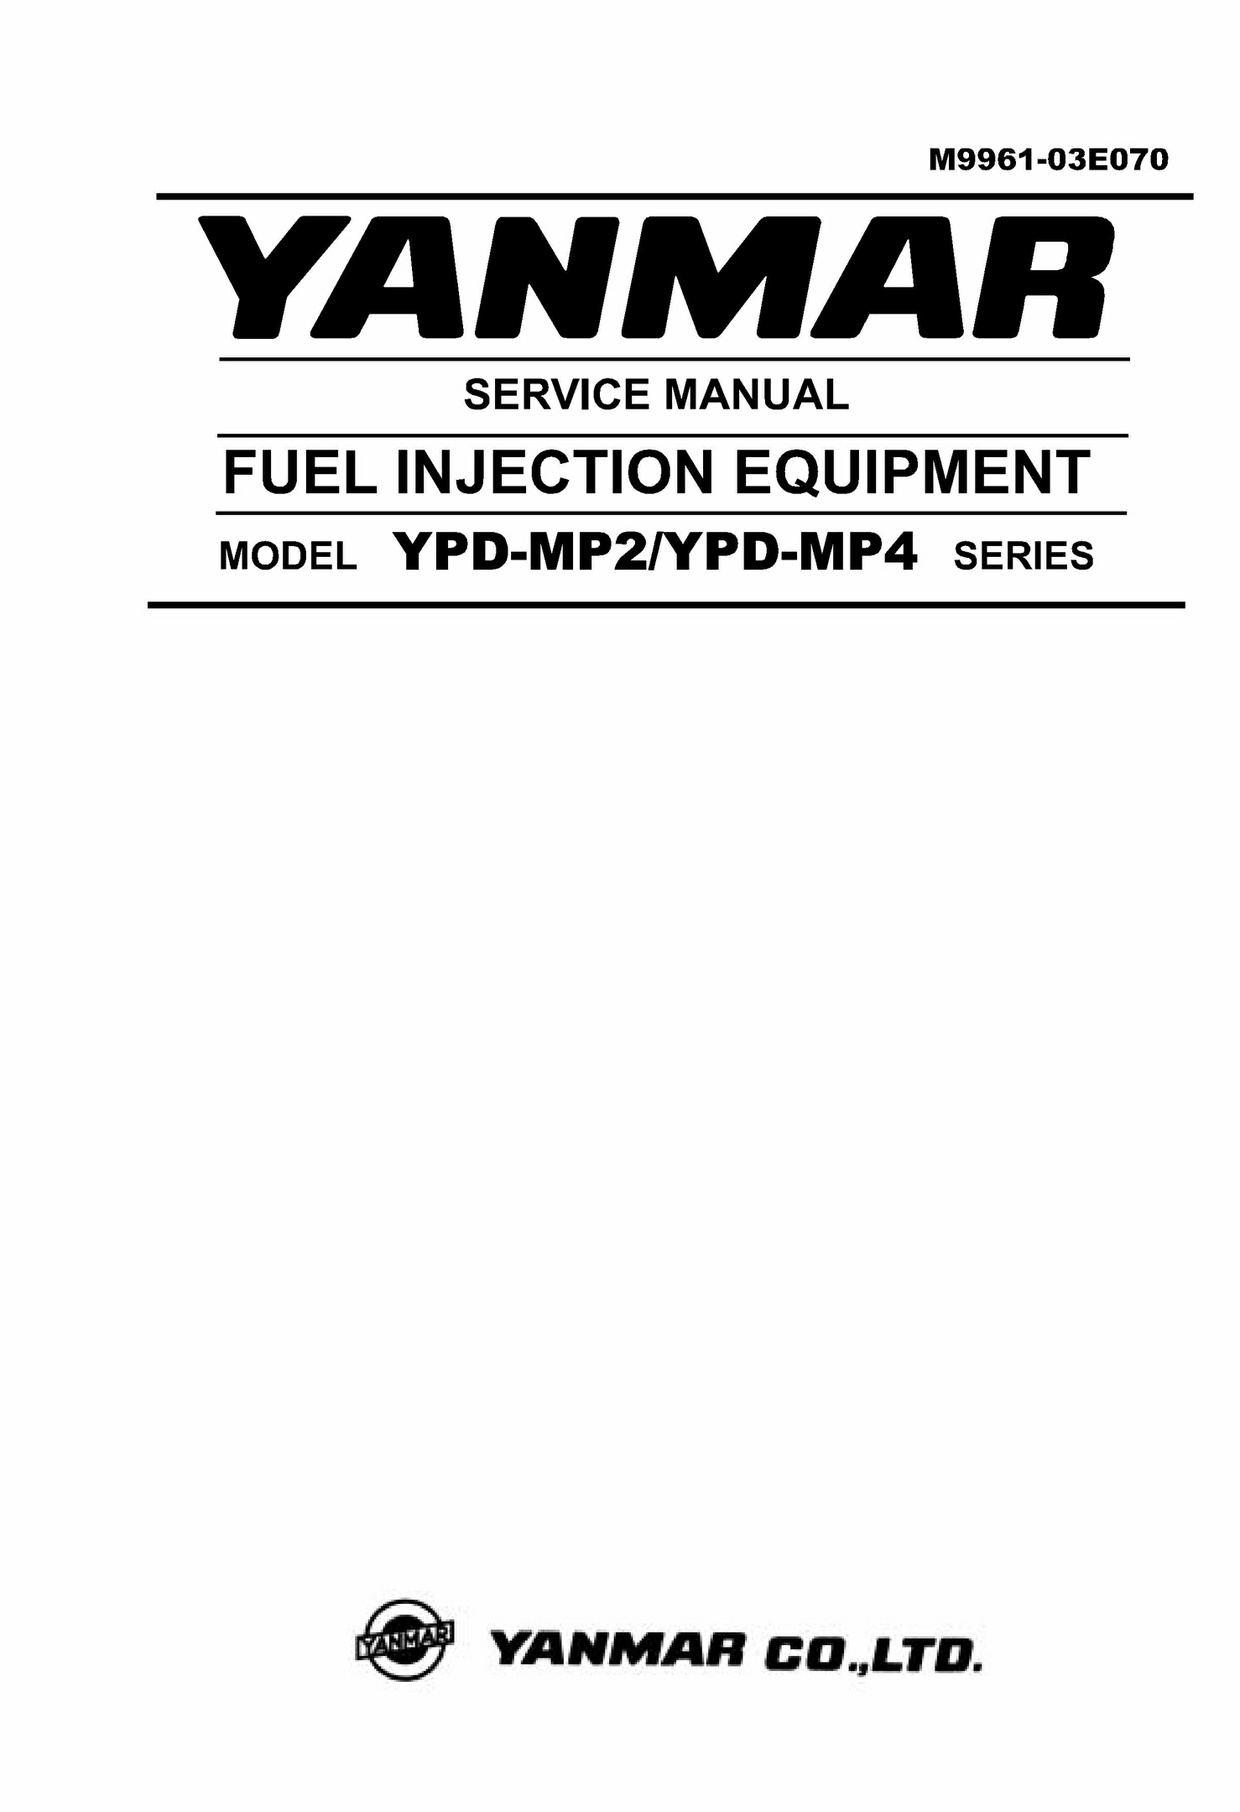 Yanmar Fuel Injection Equipment Model YPD-MP2 , YPD-MP4 Series Diesel Engine Service Repair Manual